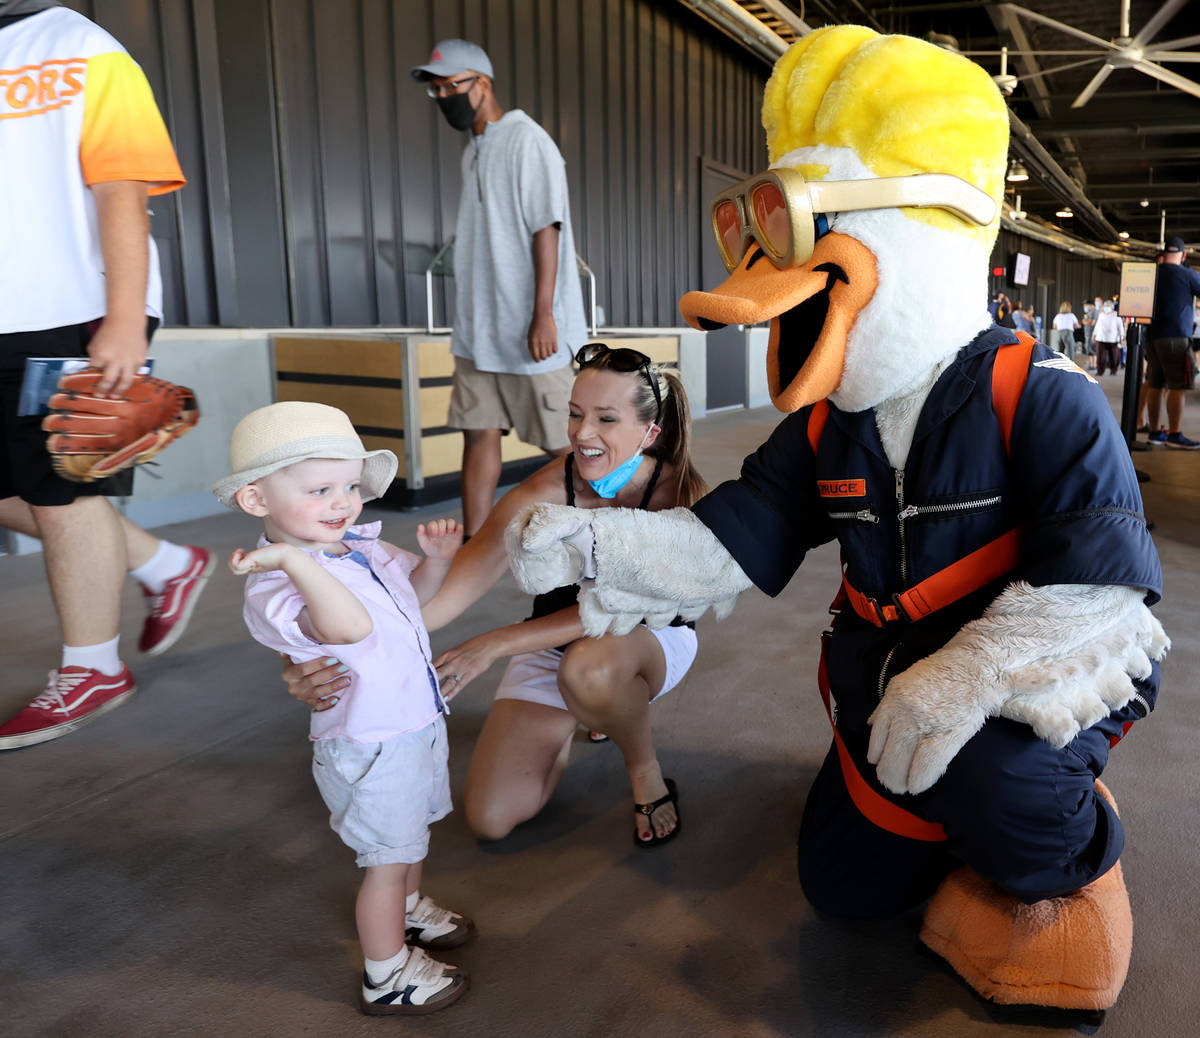 Janel Hansen and her son Ryker greet Spruce the mascot on the concourse at Las Vegas Ballpark a ...